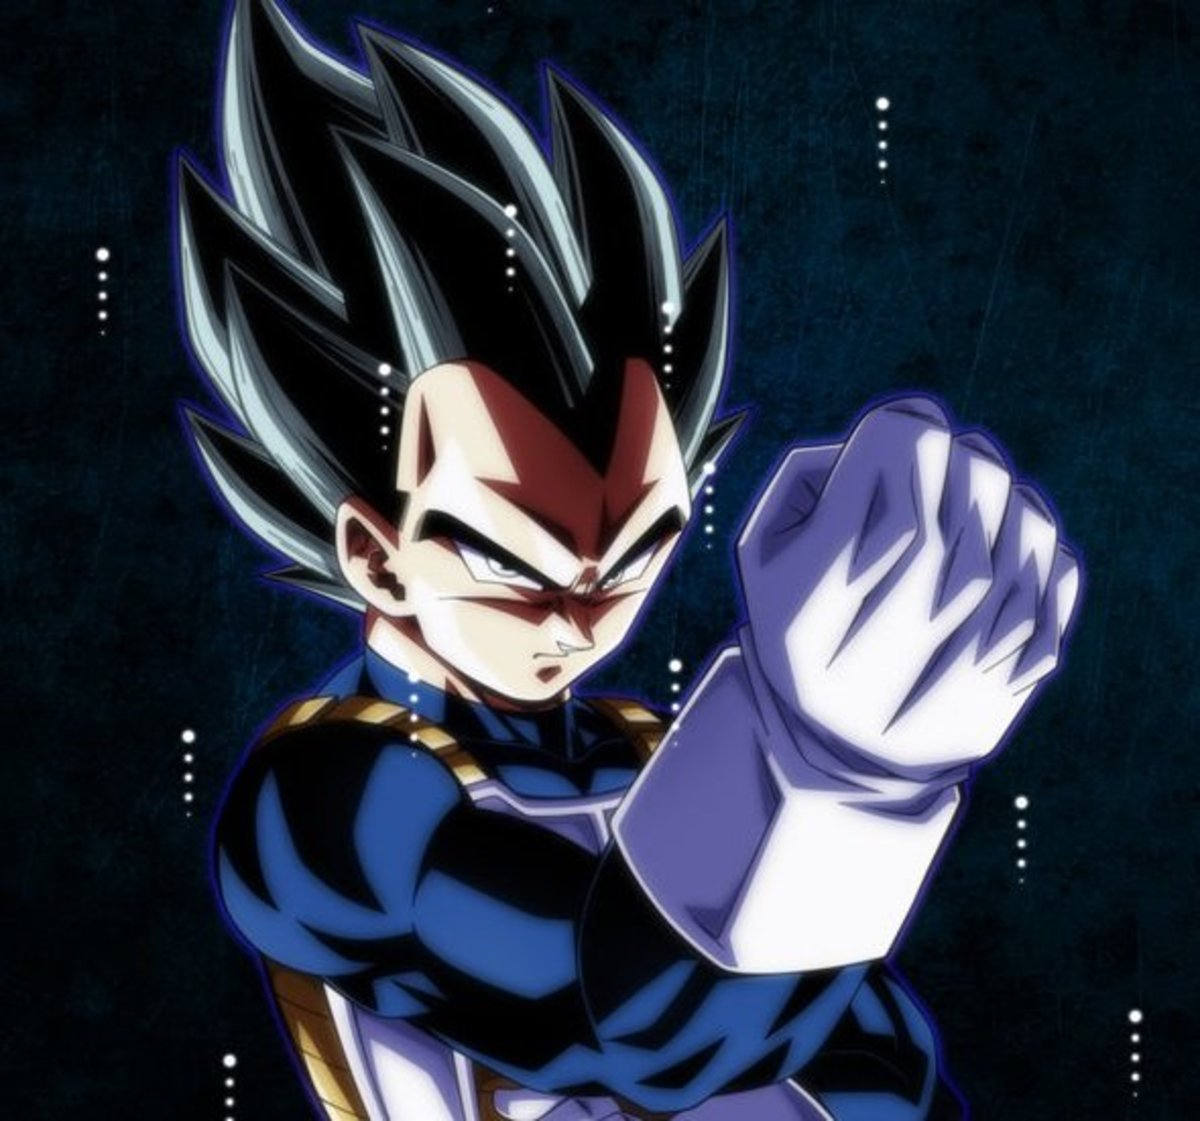 Top 10 Facts About Vegeta, Prince of All Saiyans